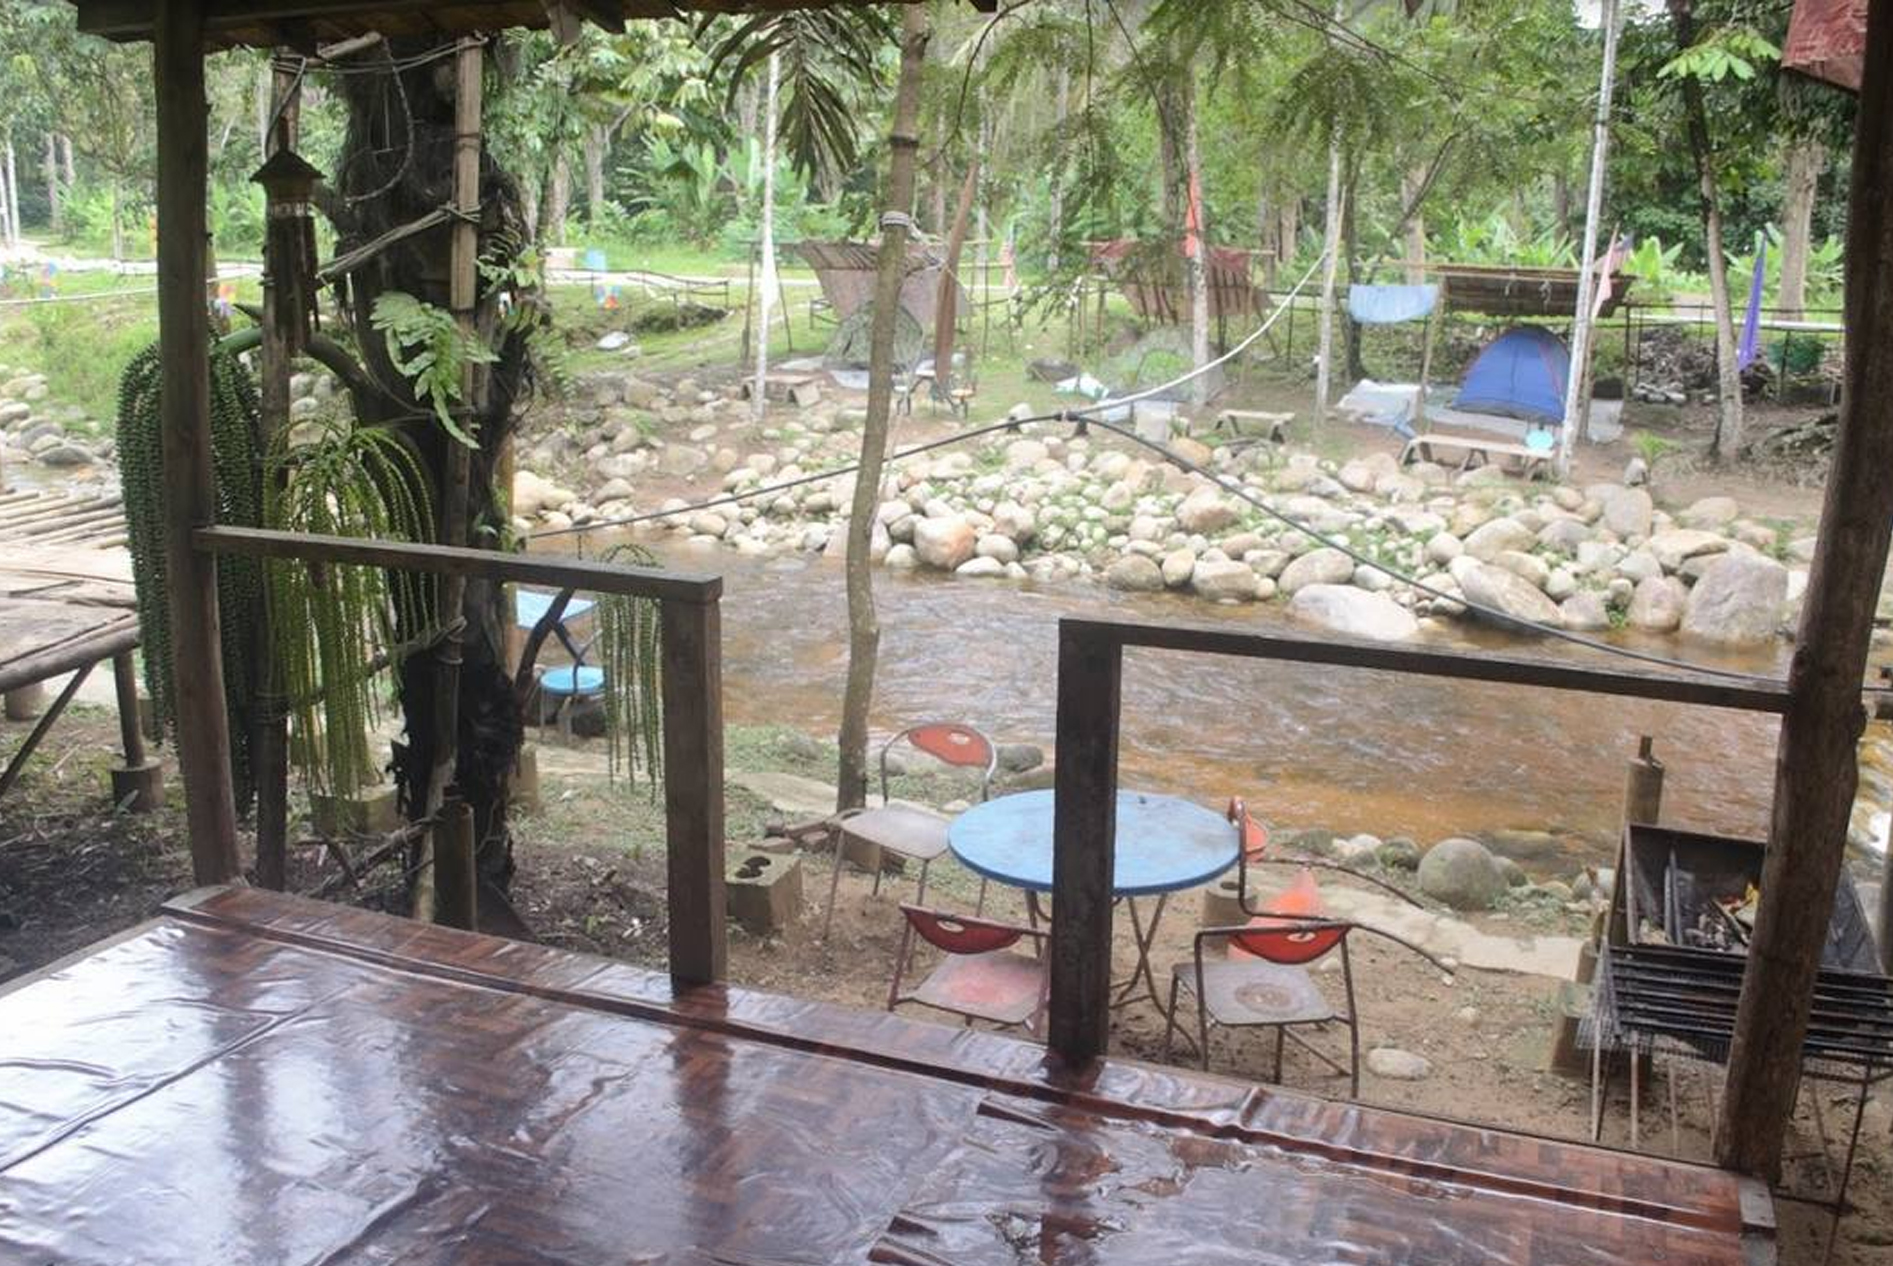 sungai_bil_cool_spring_ulu_slim_perak_outdoor_activity_car_camping_site_malaysia_car_camping-2